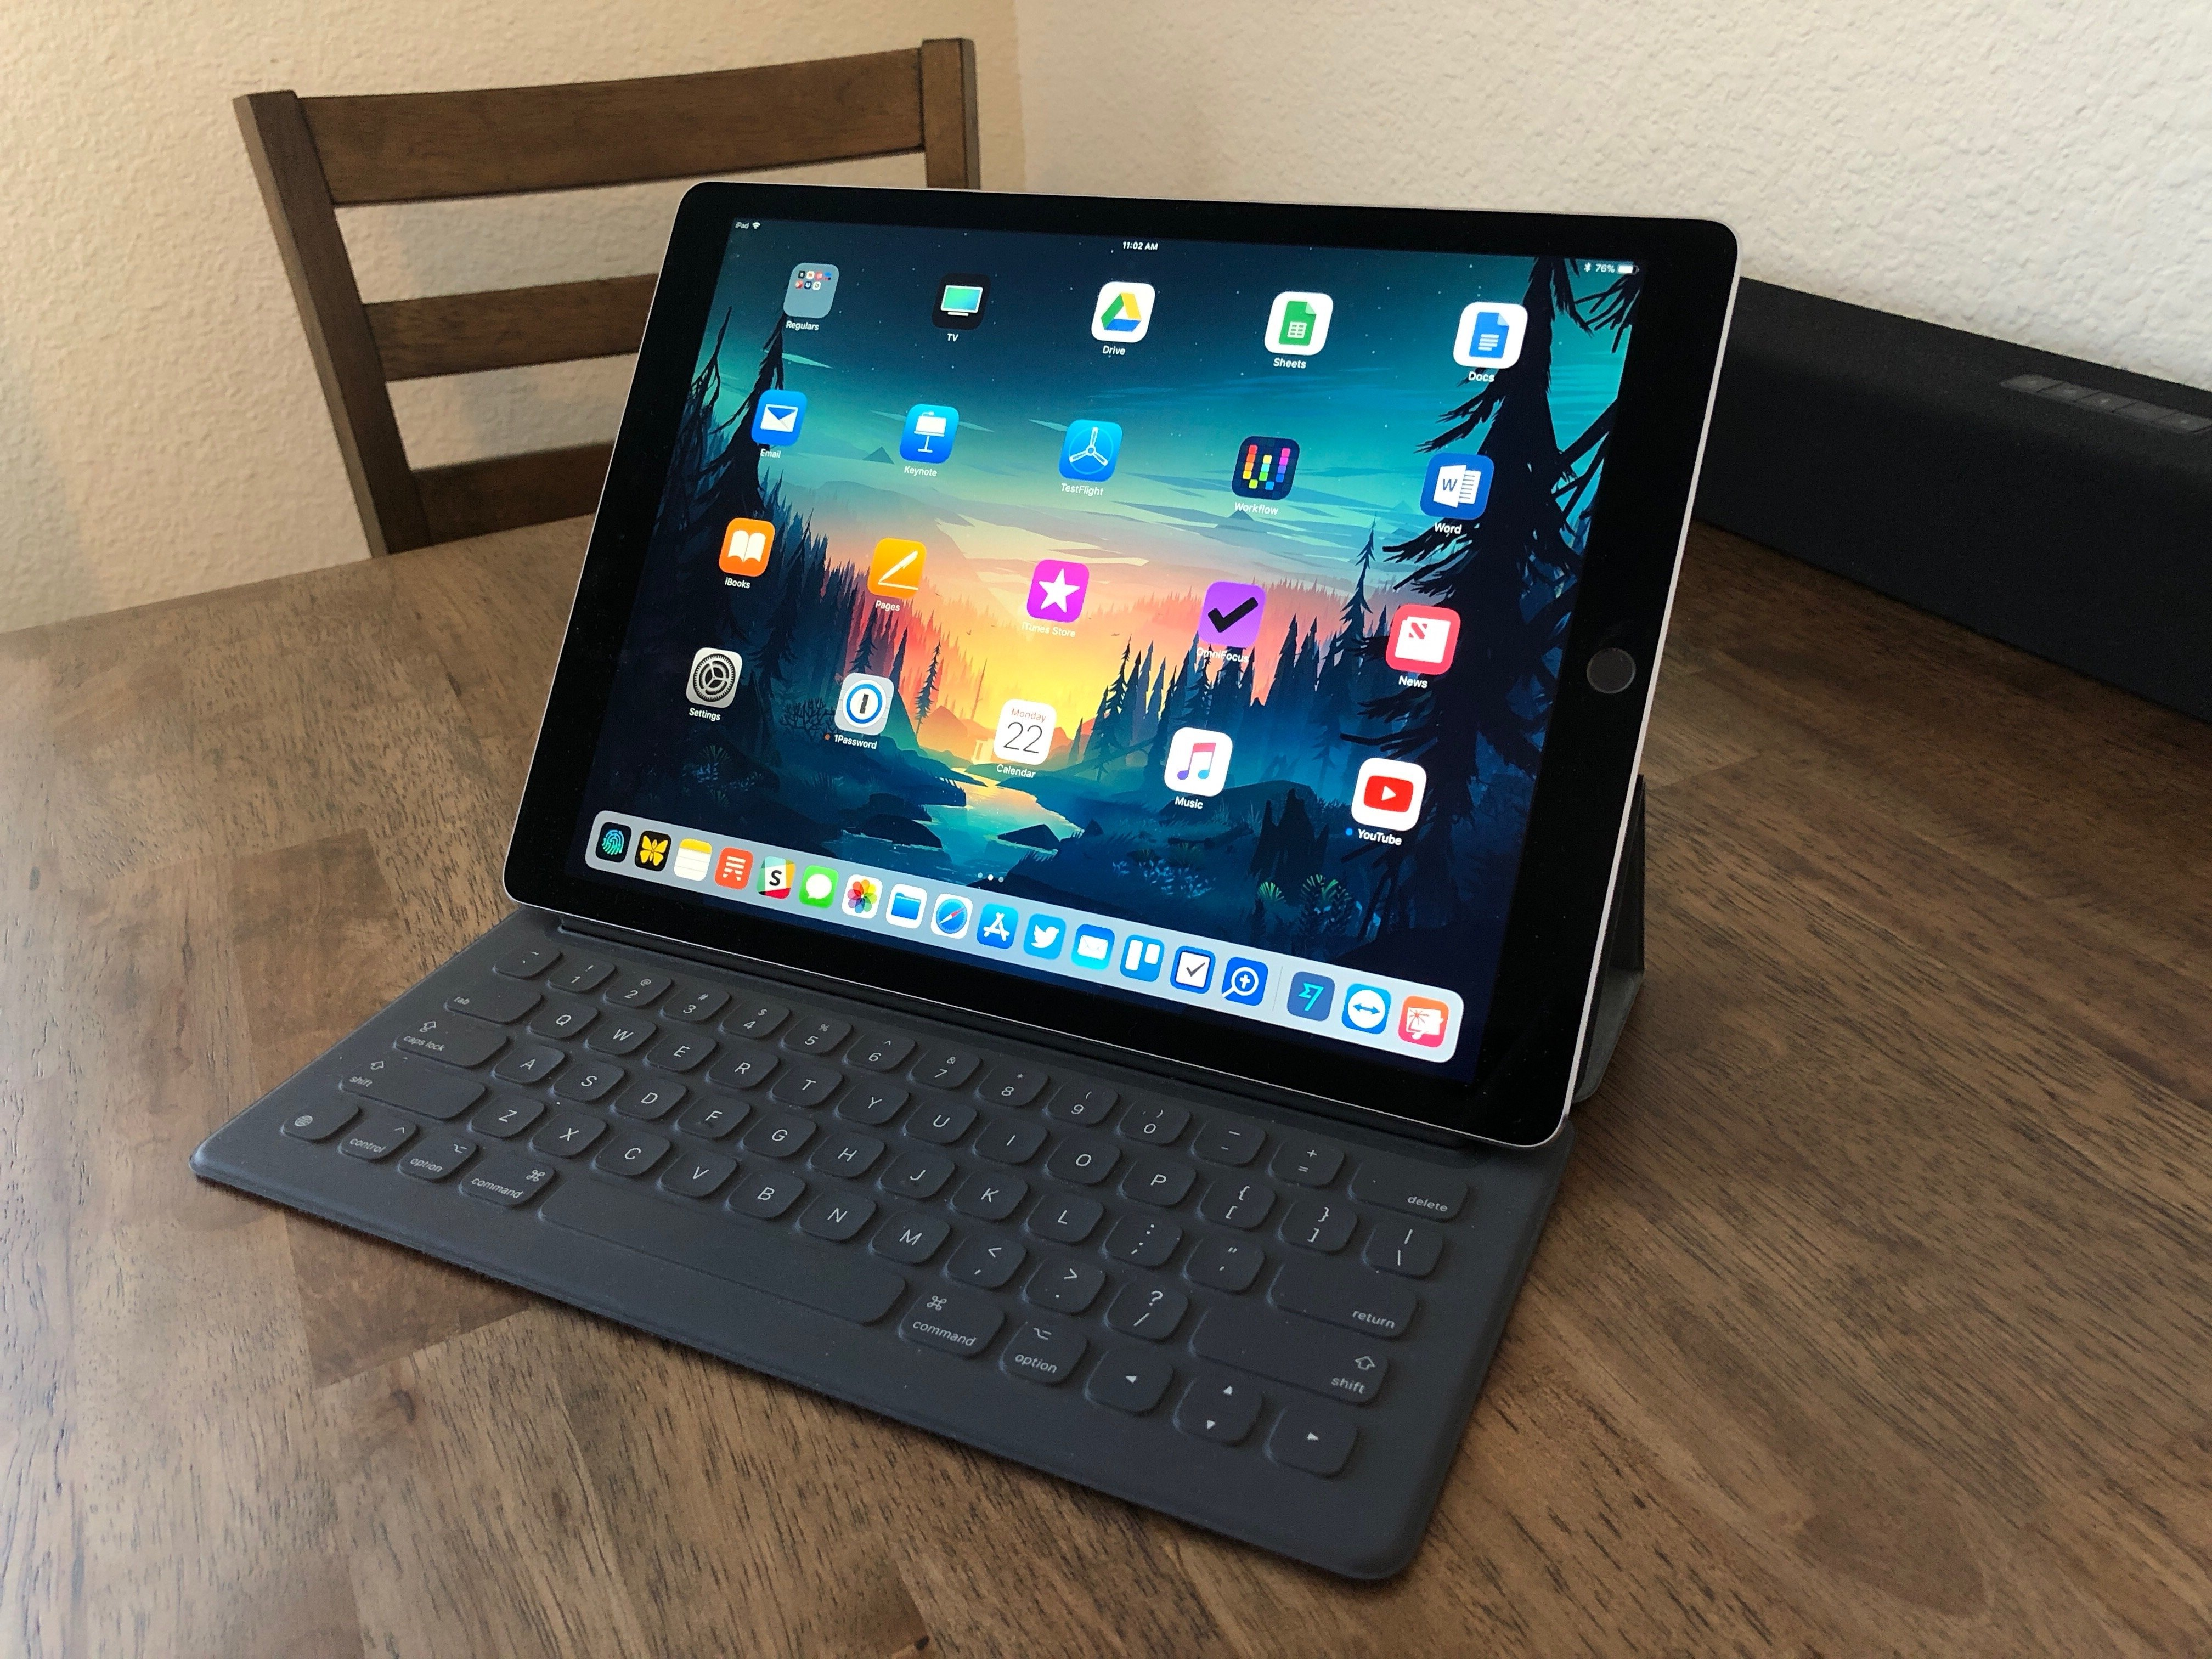 What I Wish the iPad Would Gain from the Mac